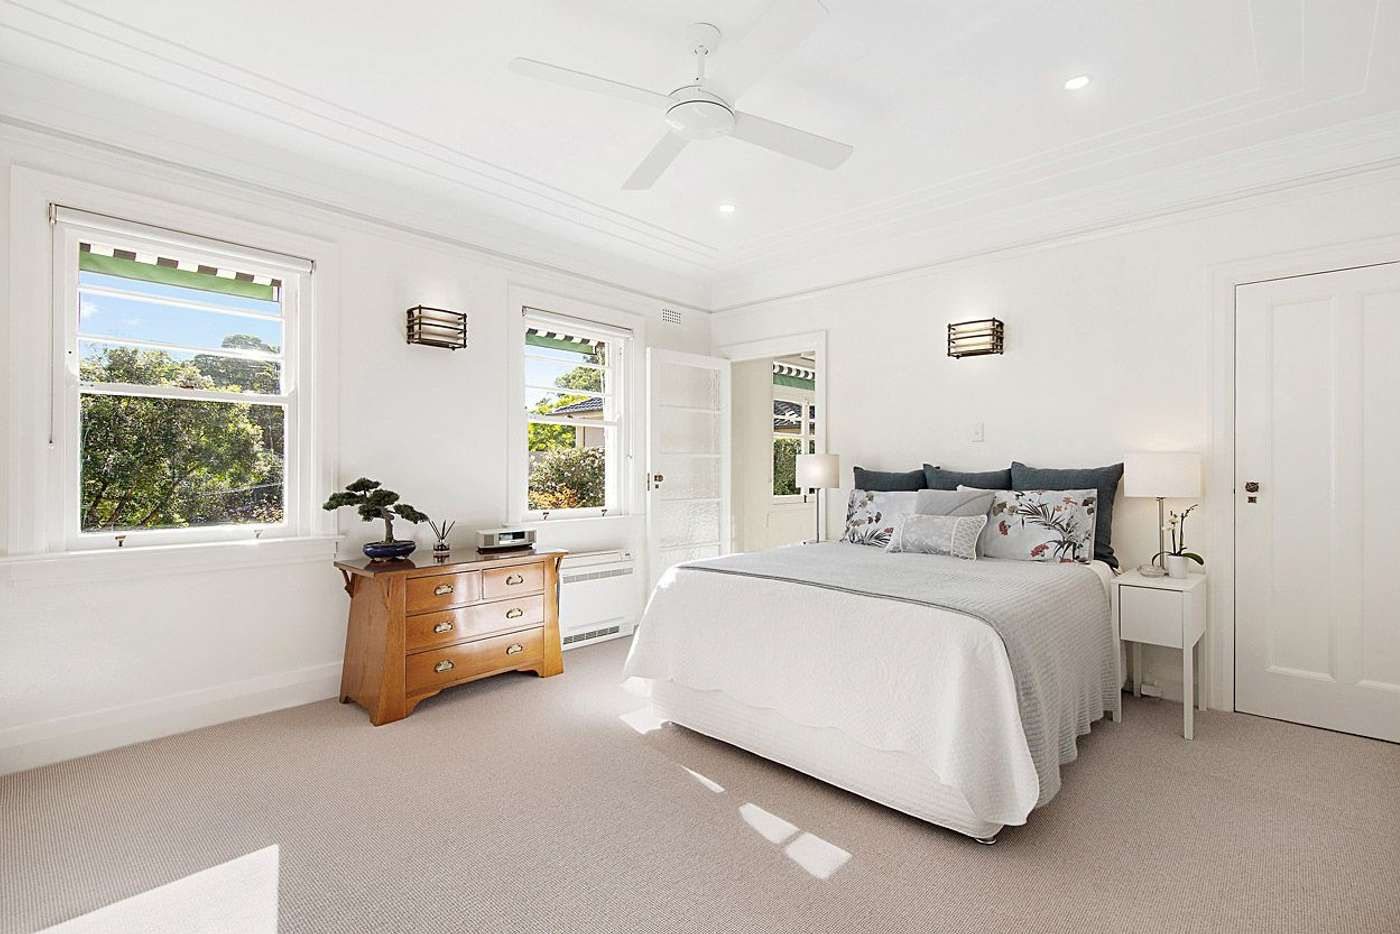 Sixth view of Homely house listing, 62 Bushlands Avenue, Gordon NSW 2072